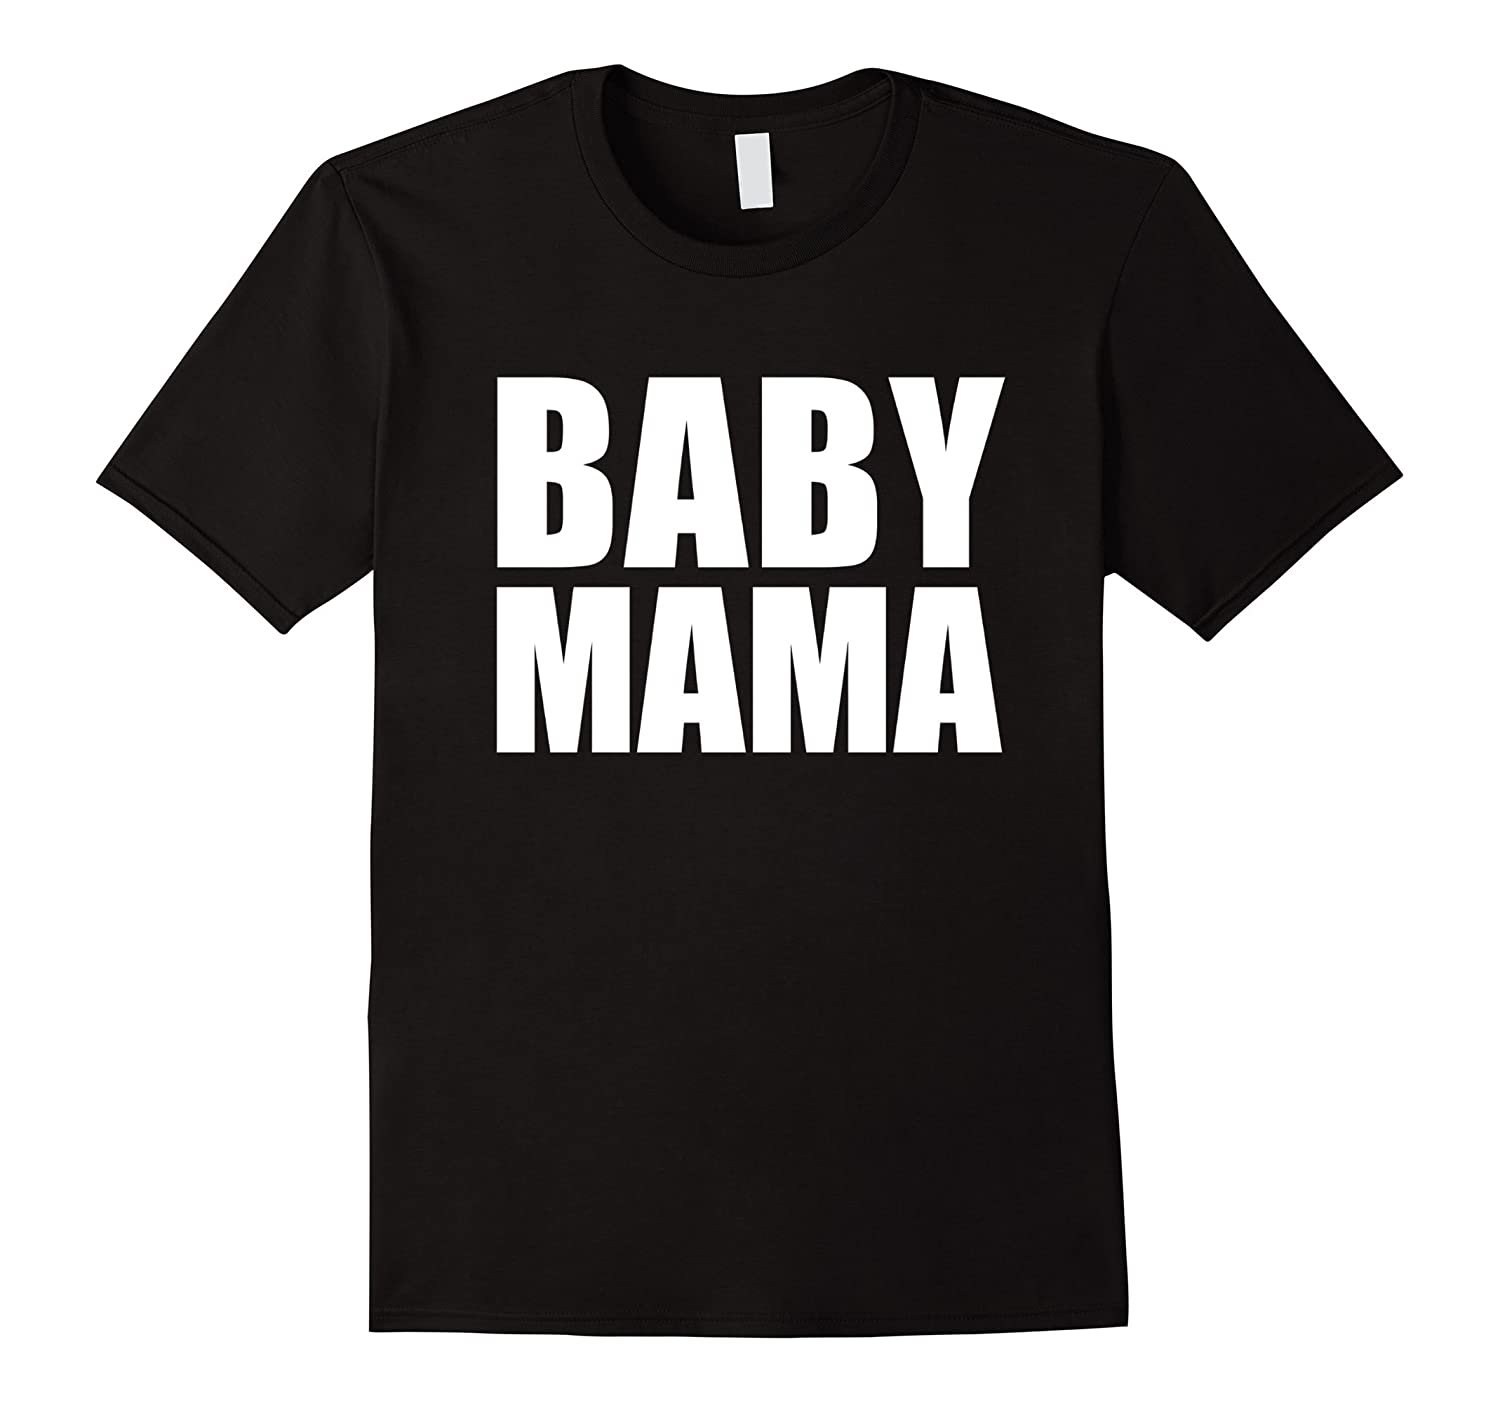 Find great deals on eBay for baby mama shirt. Shop with confidence.